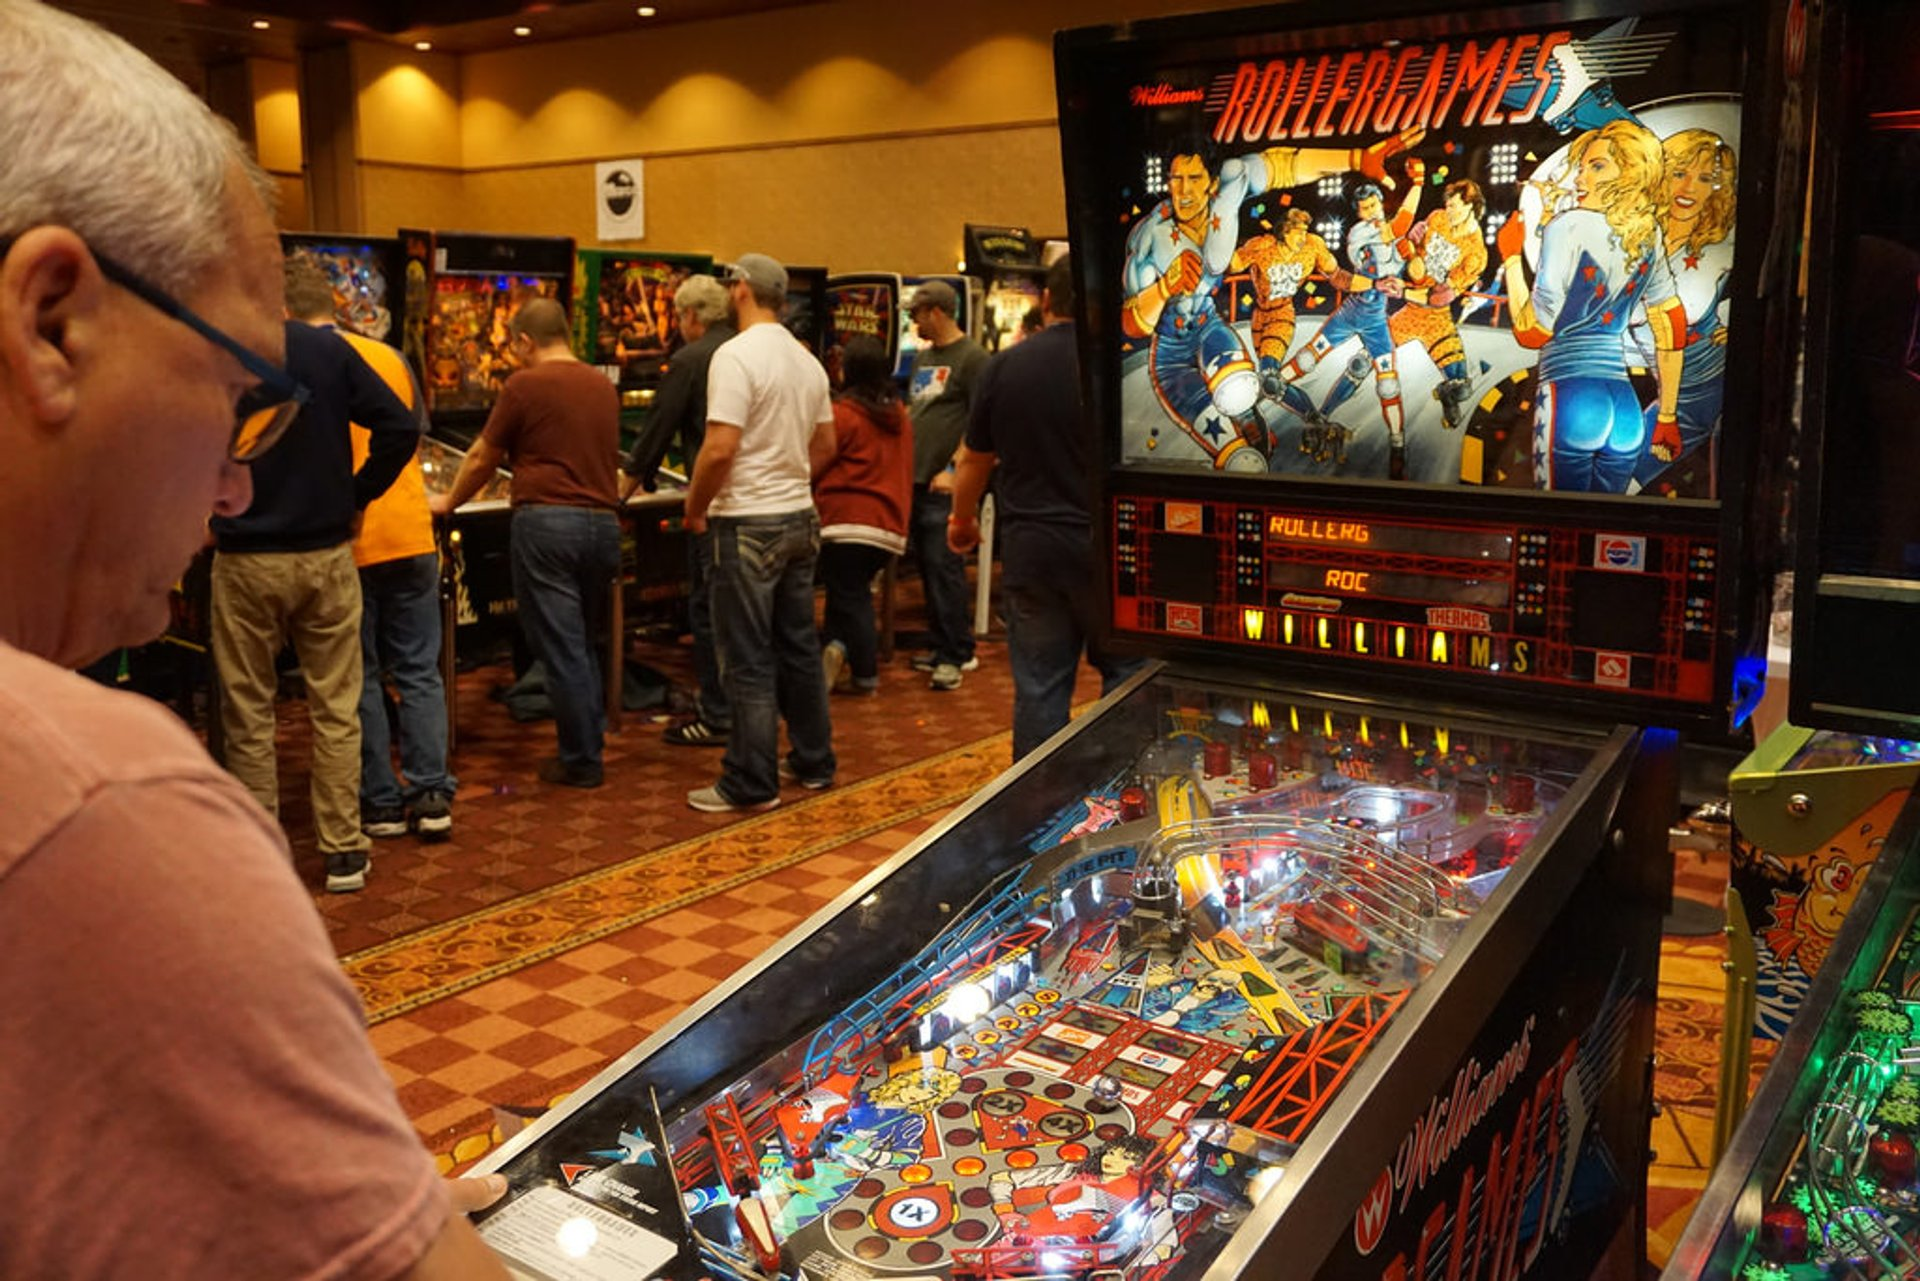 Texas Pinball Festival in Texas - Best Season 2020